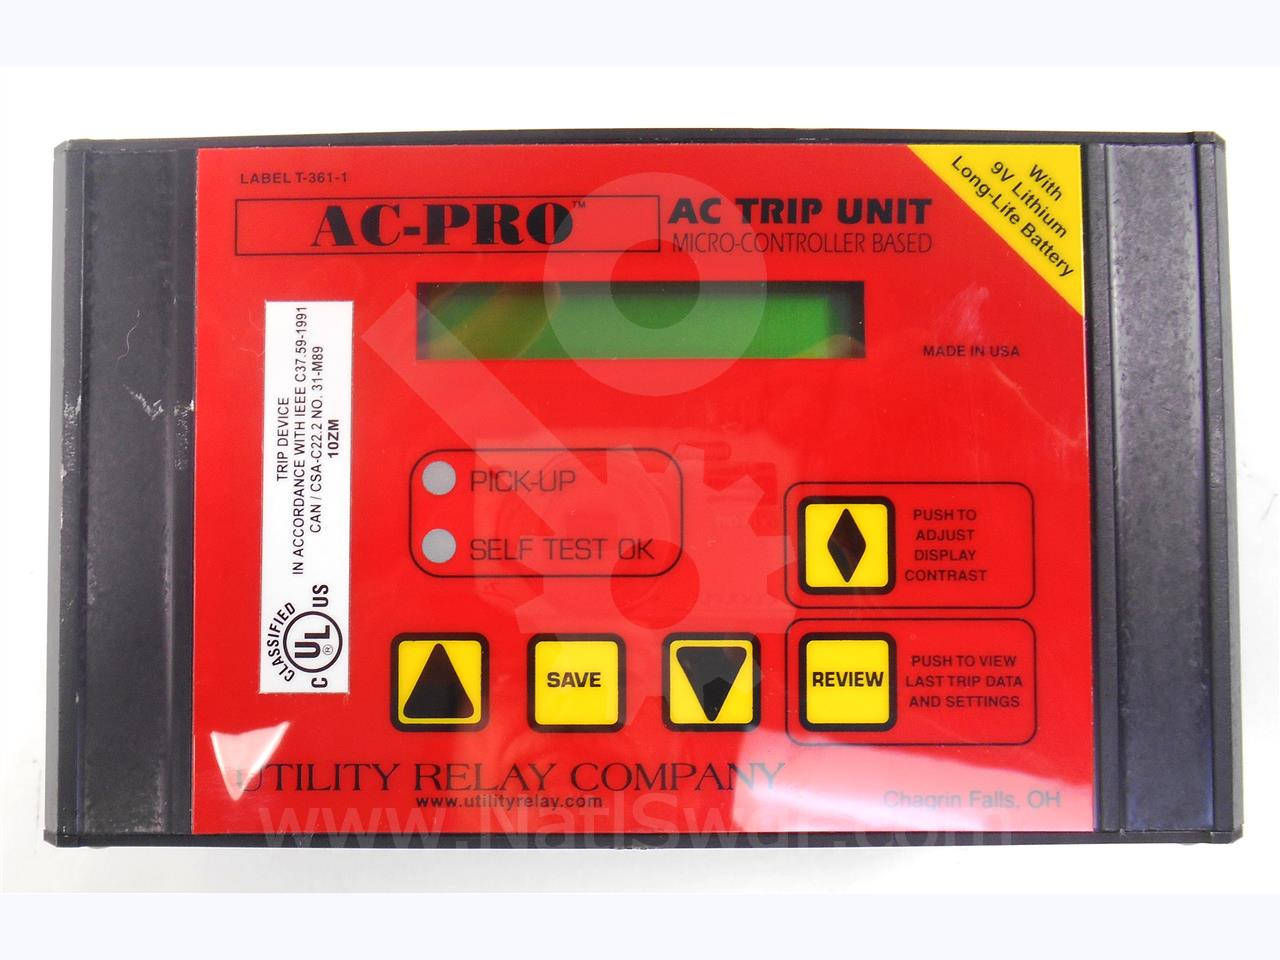 B-521H Utility Relay Company  AC PRO 1A SOLID STATE PROGRAMMER LSIG HORIZONTAL MOUNT, 9 VOLT LITHIUM BATTERY